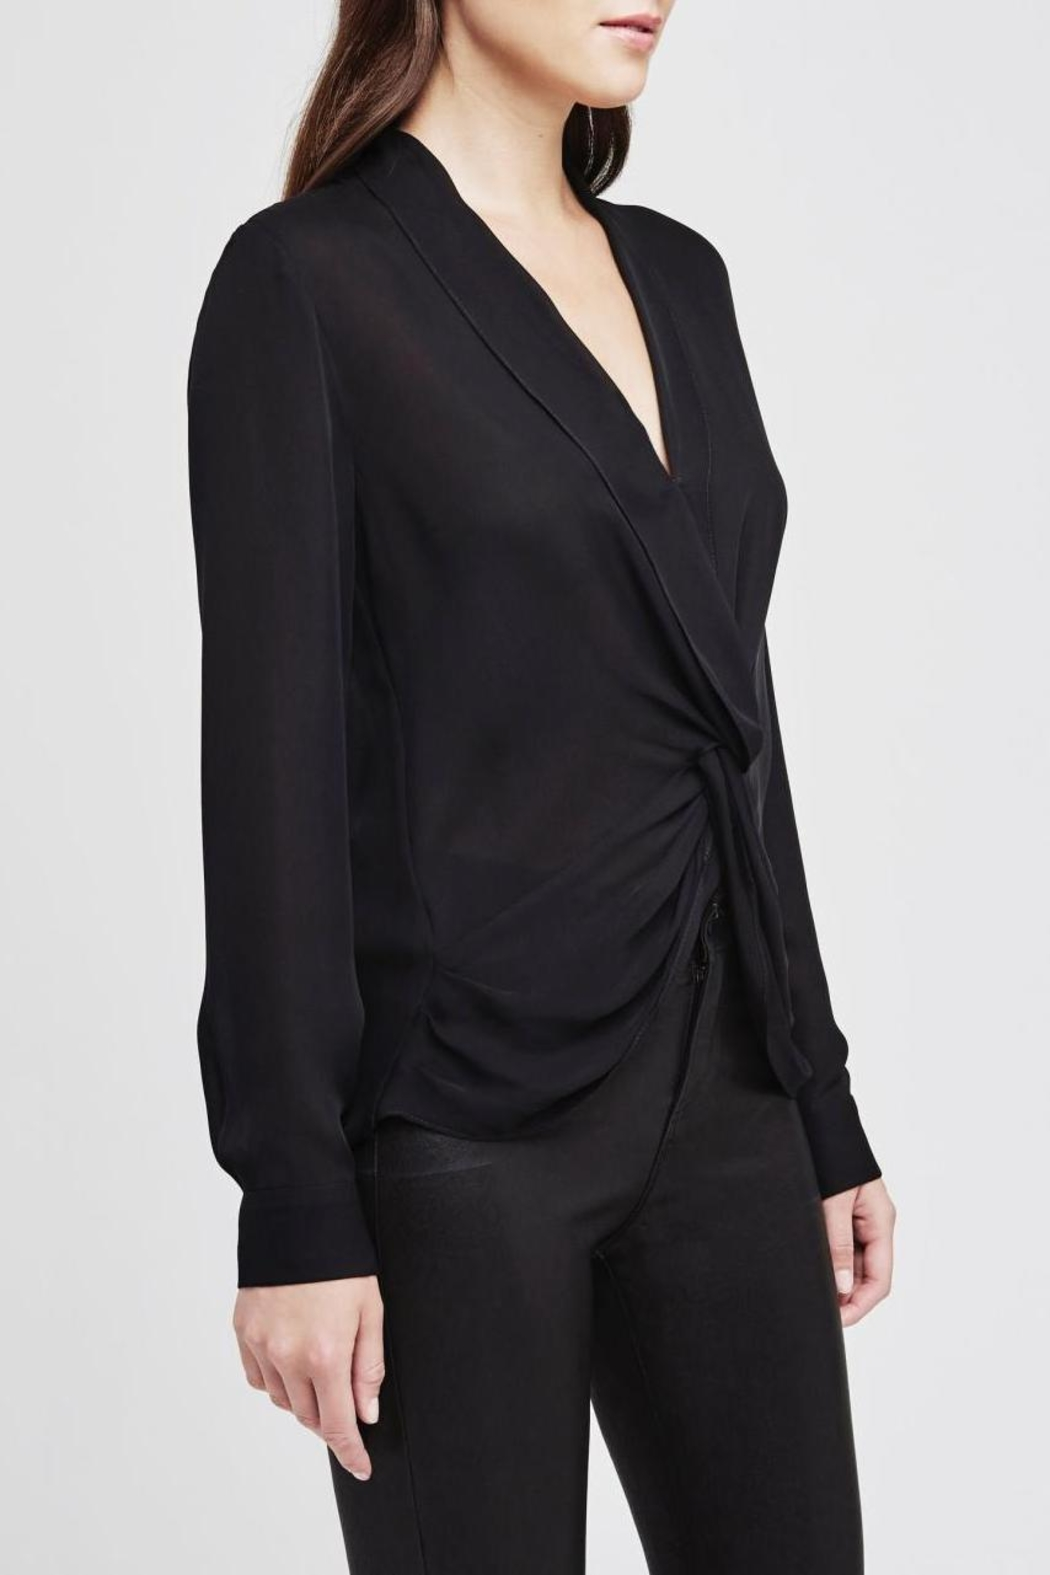 L'Agence Mariposa Twist Blouse - Front Full Image